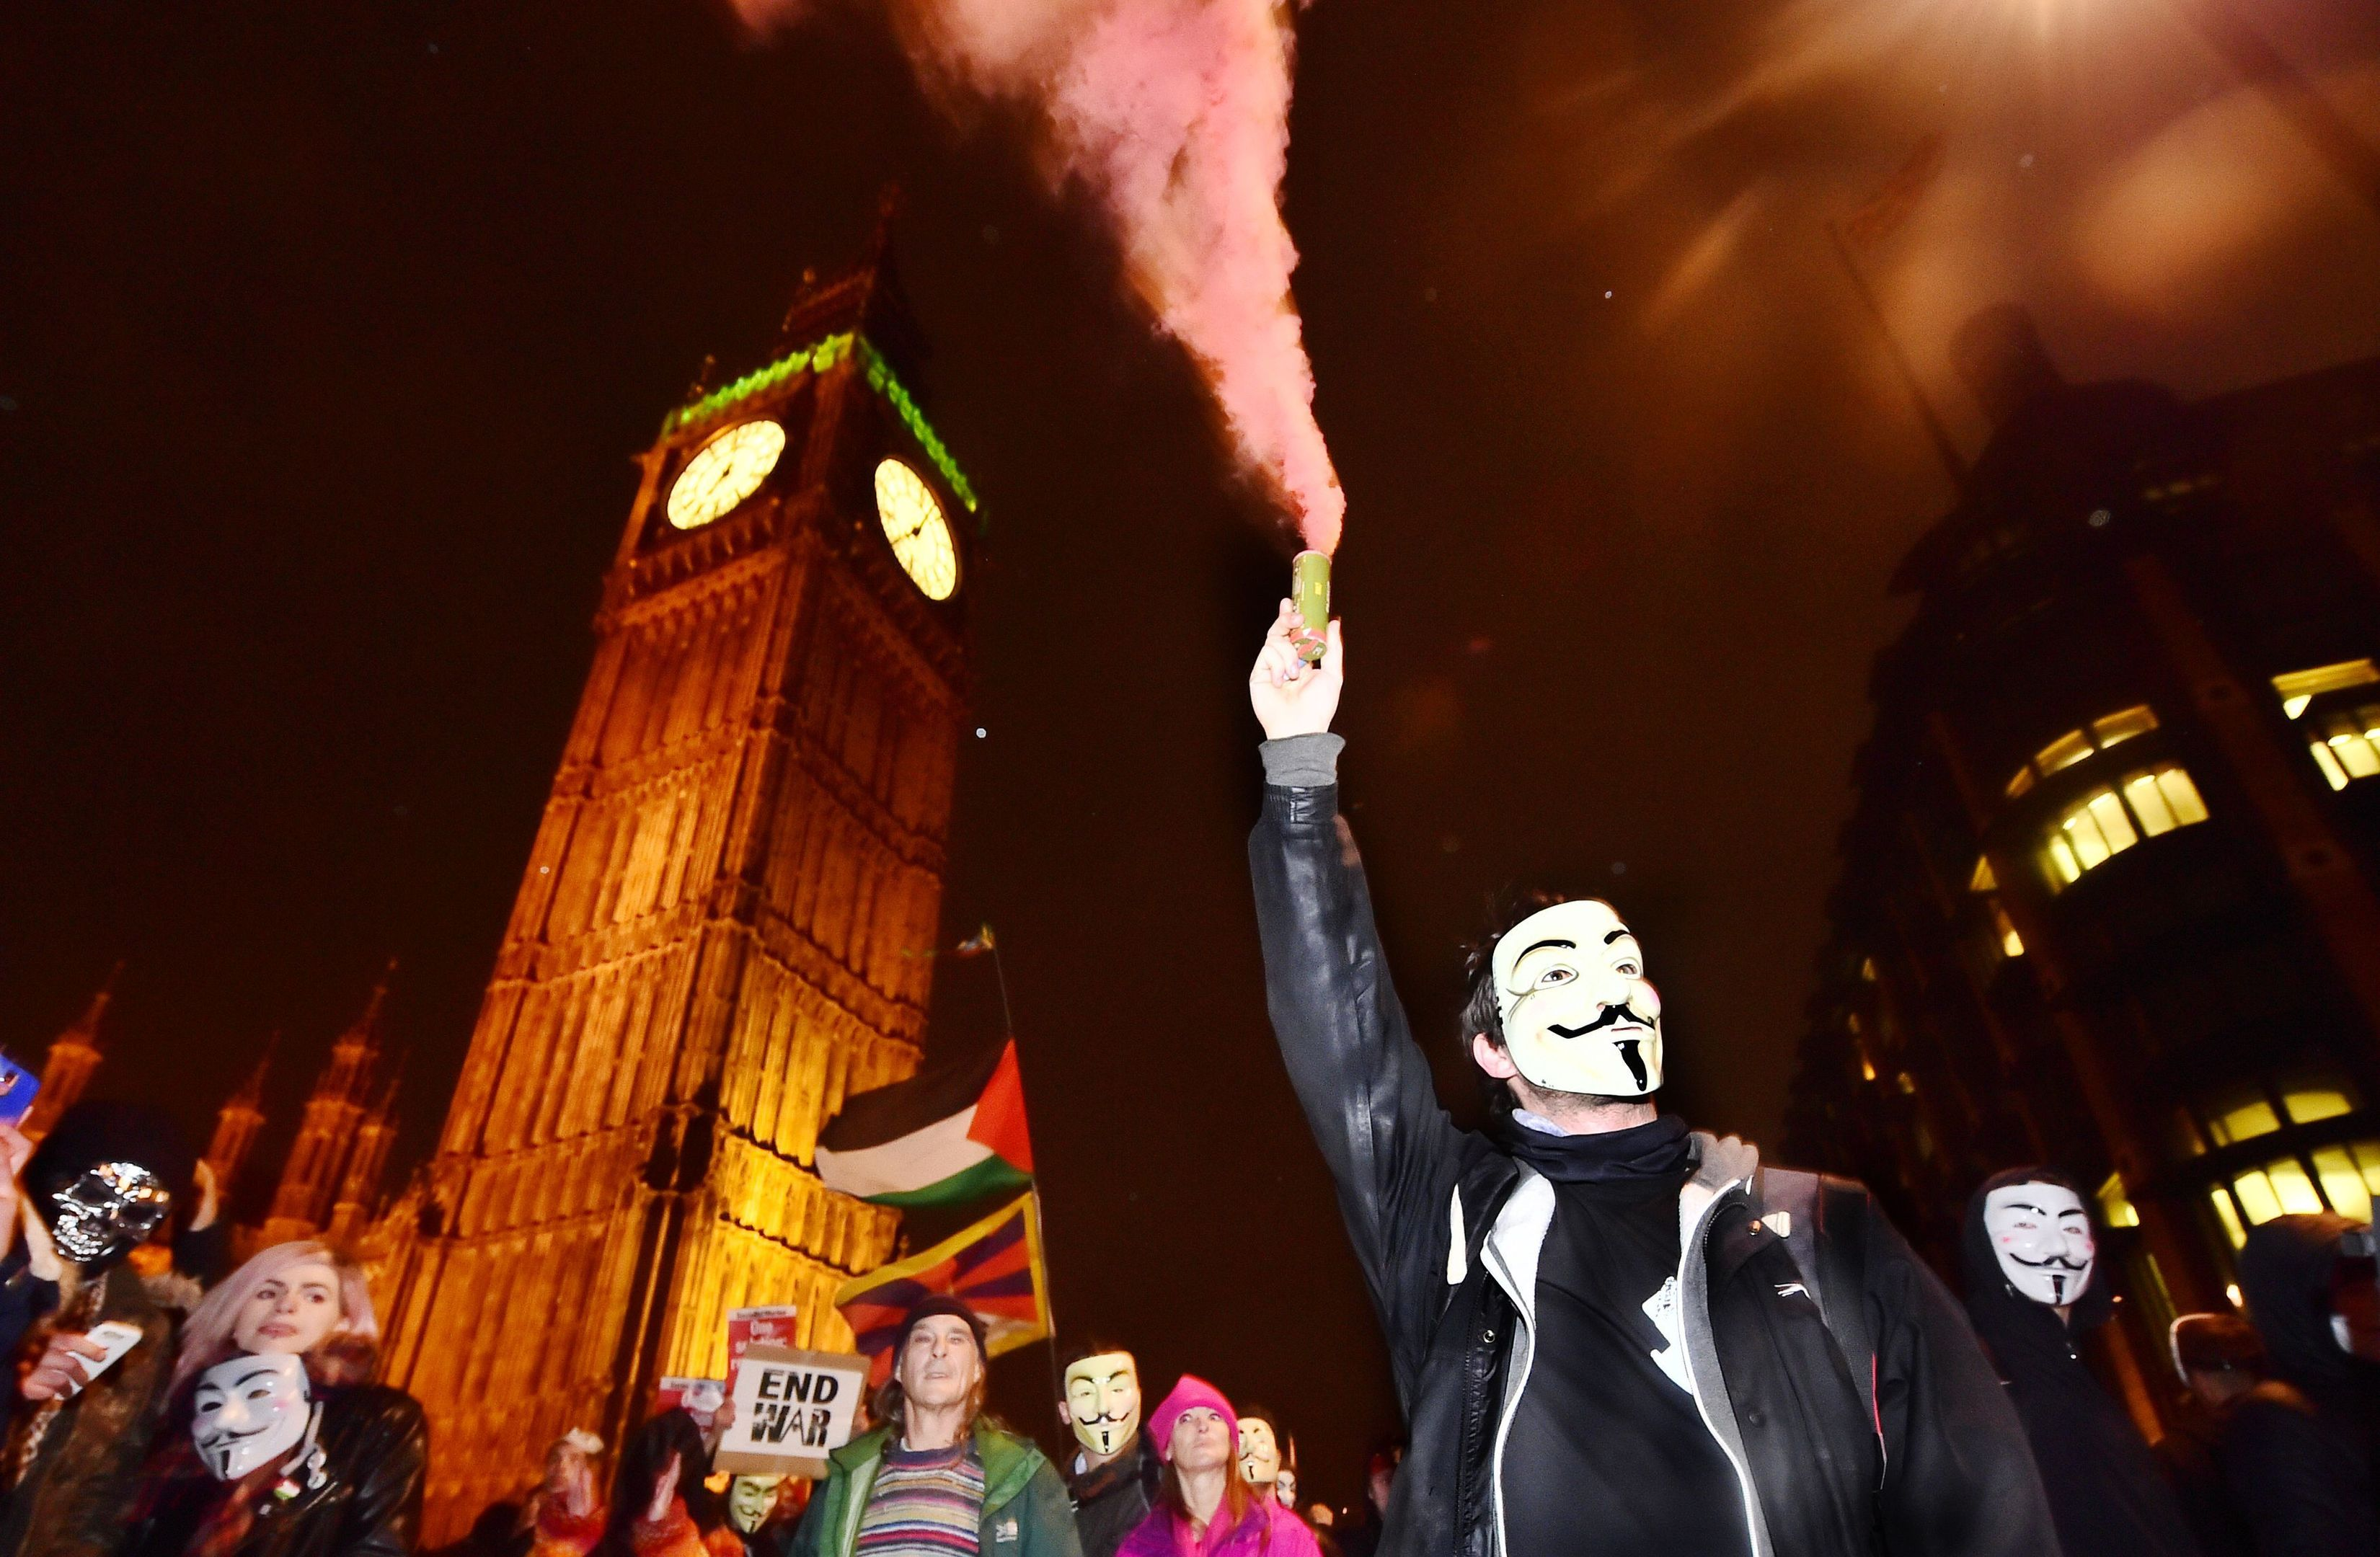 Protestors demonstrate near the Houses of Parliament in London, during the Million Mask March bonfire night protest organised by activist group Anonymous in 2015